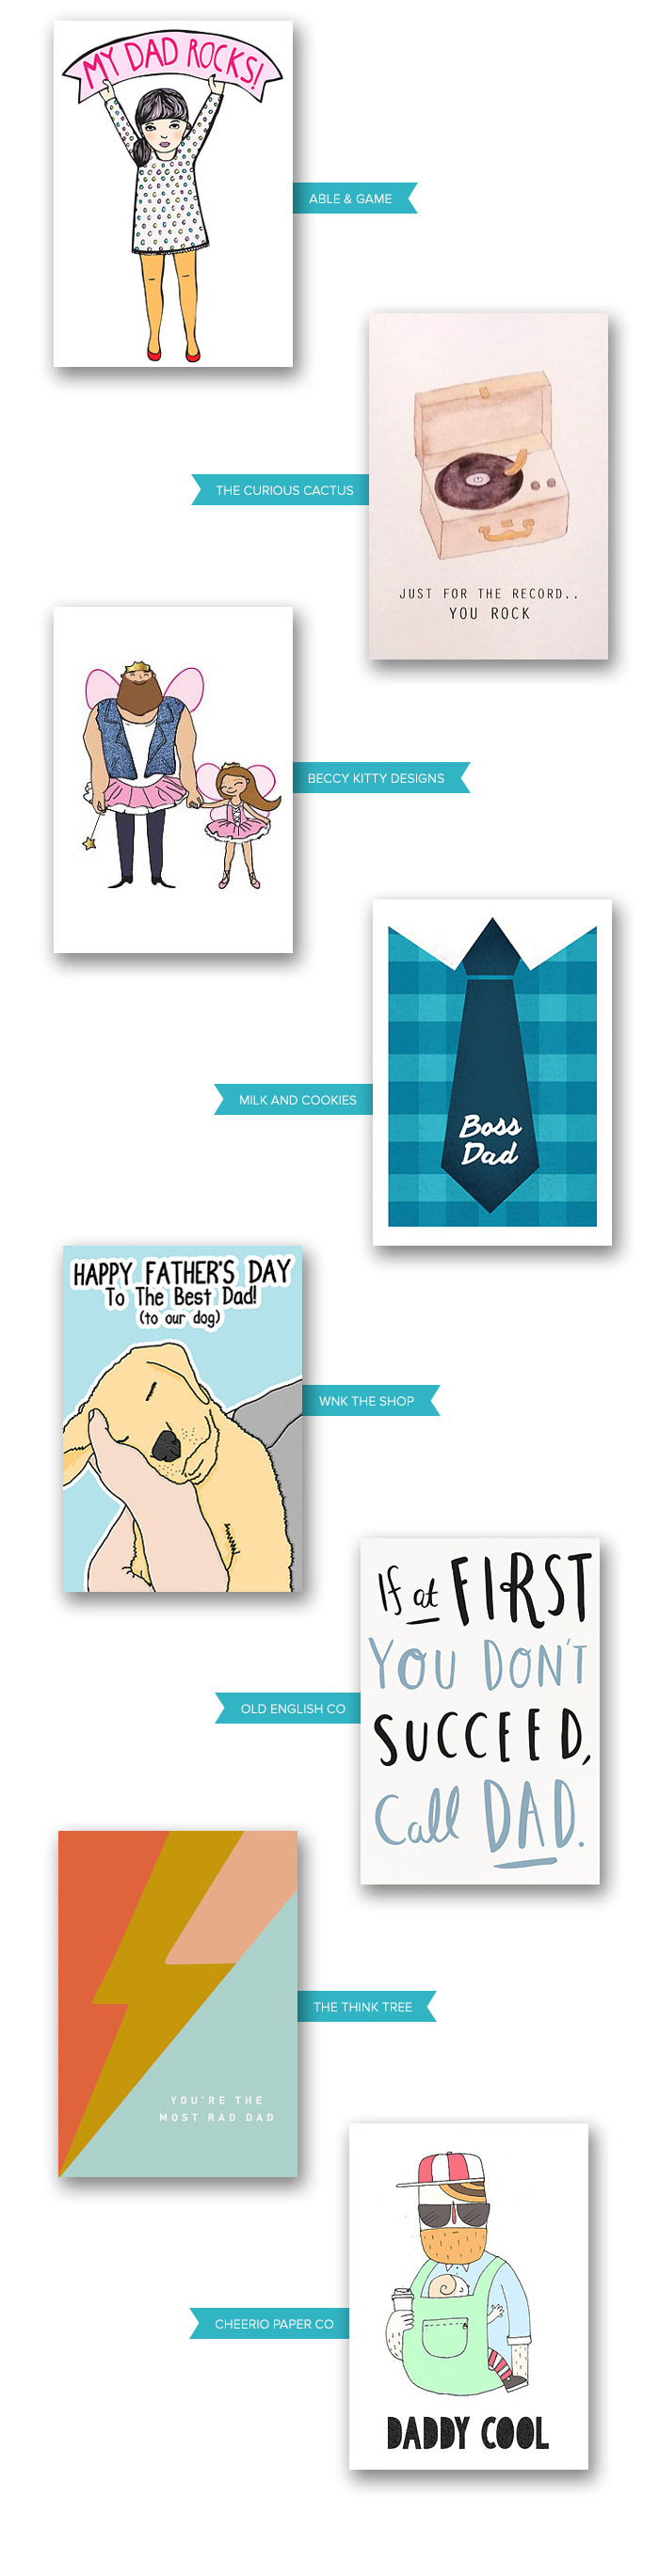 Father's Day roundup 2016